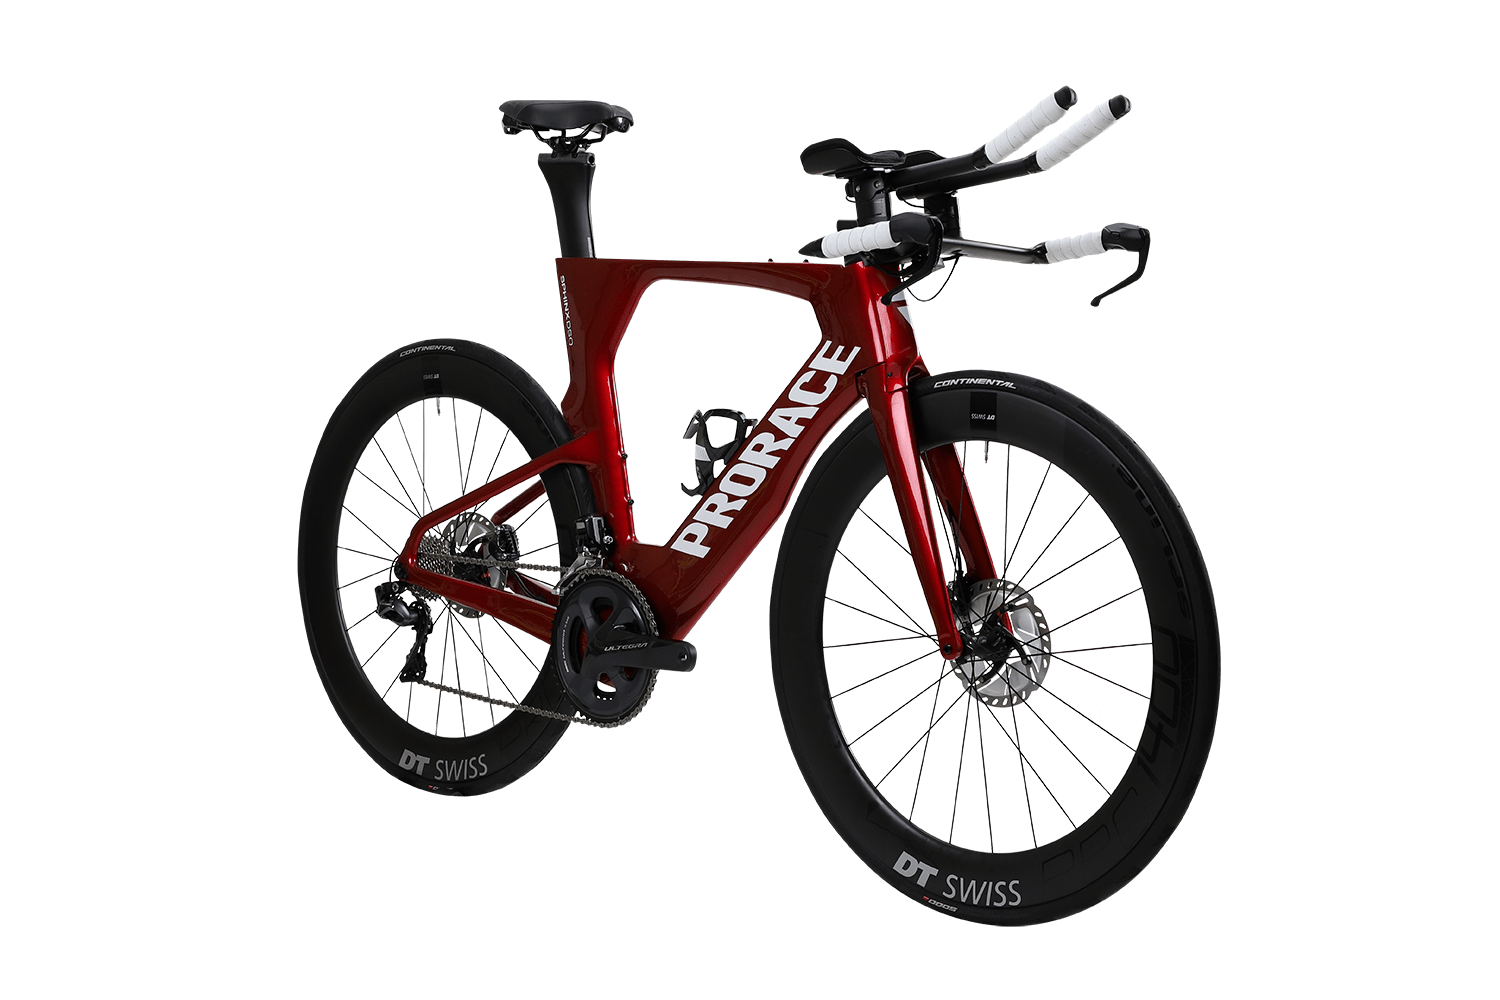 Sphinx dsq time trial fiets prorace